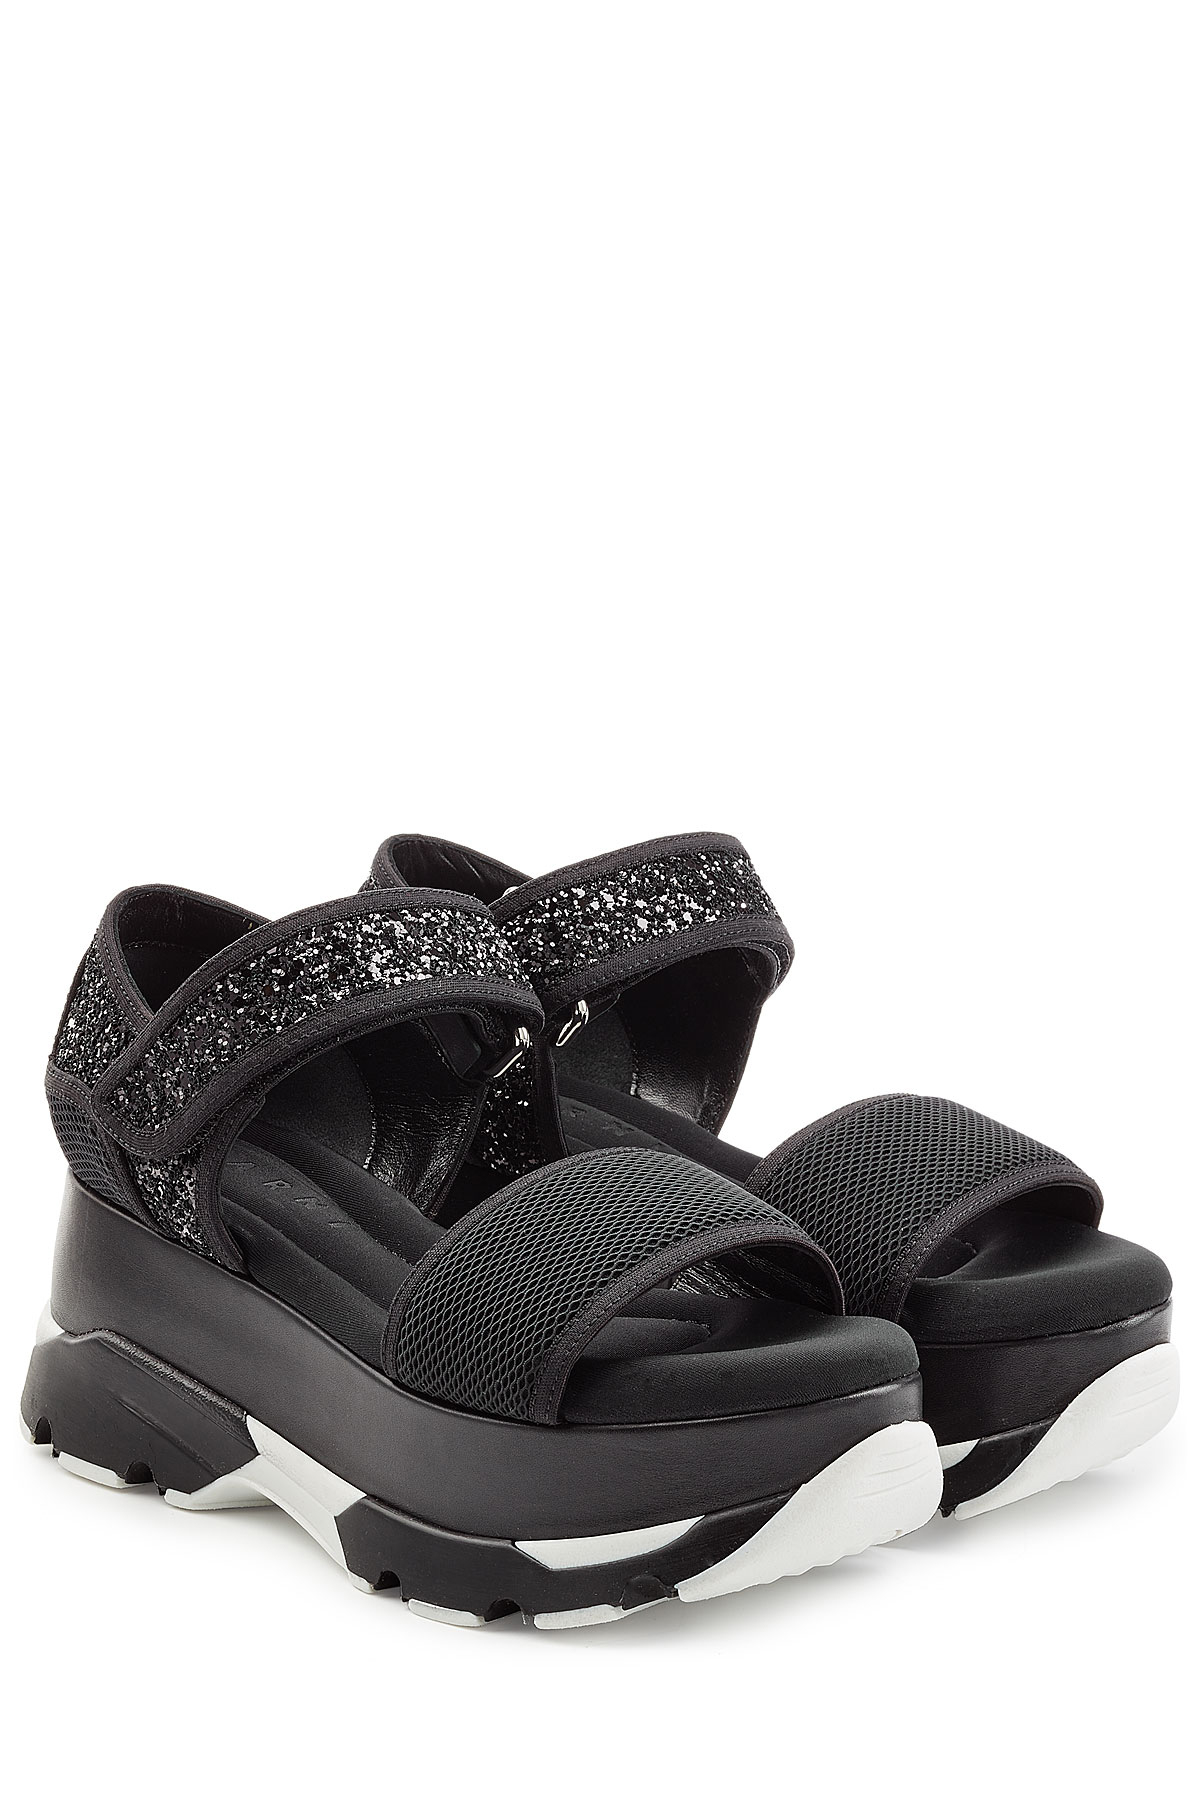 Marni Platform Sandals With Leather Mesh And Glitter